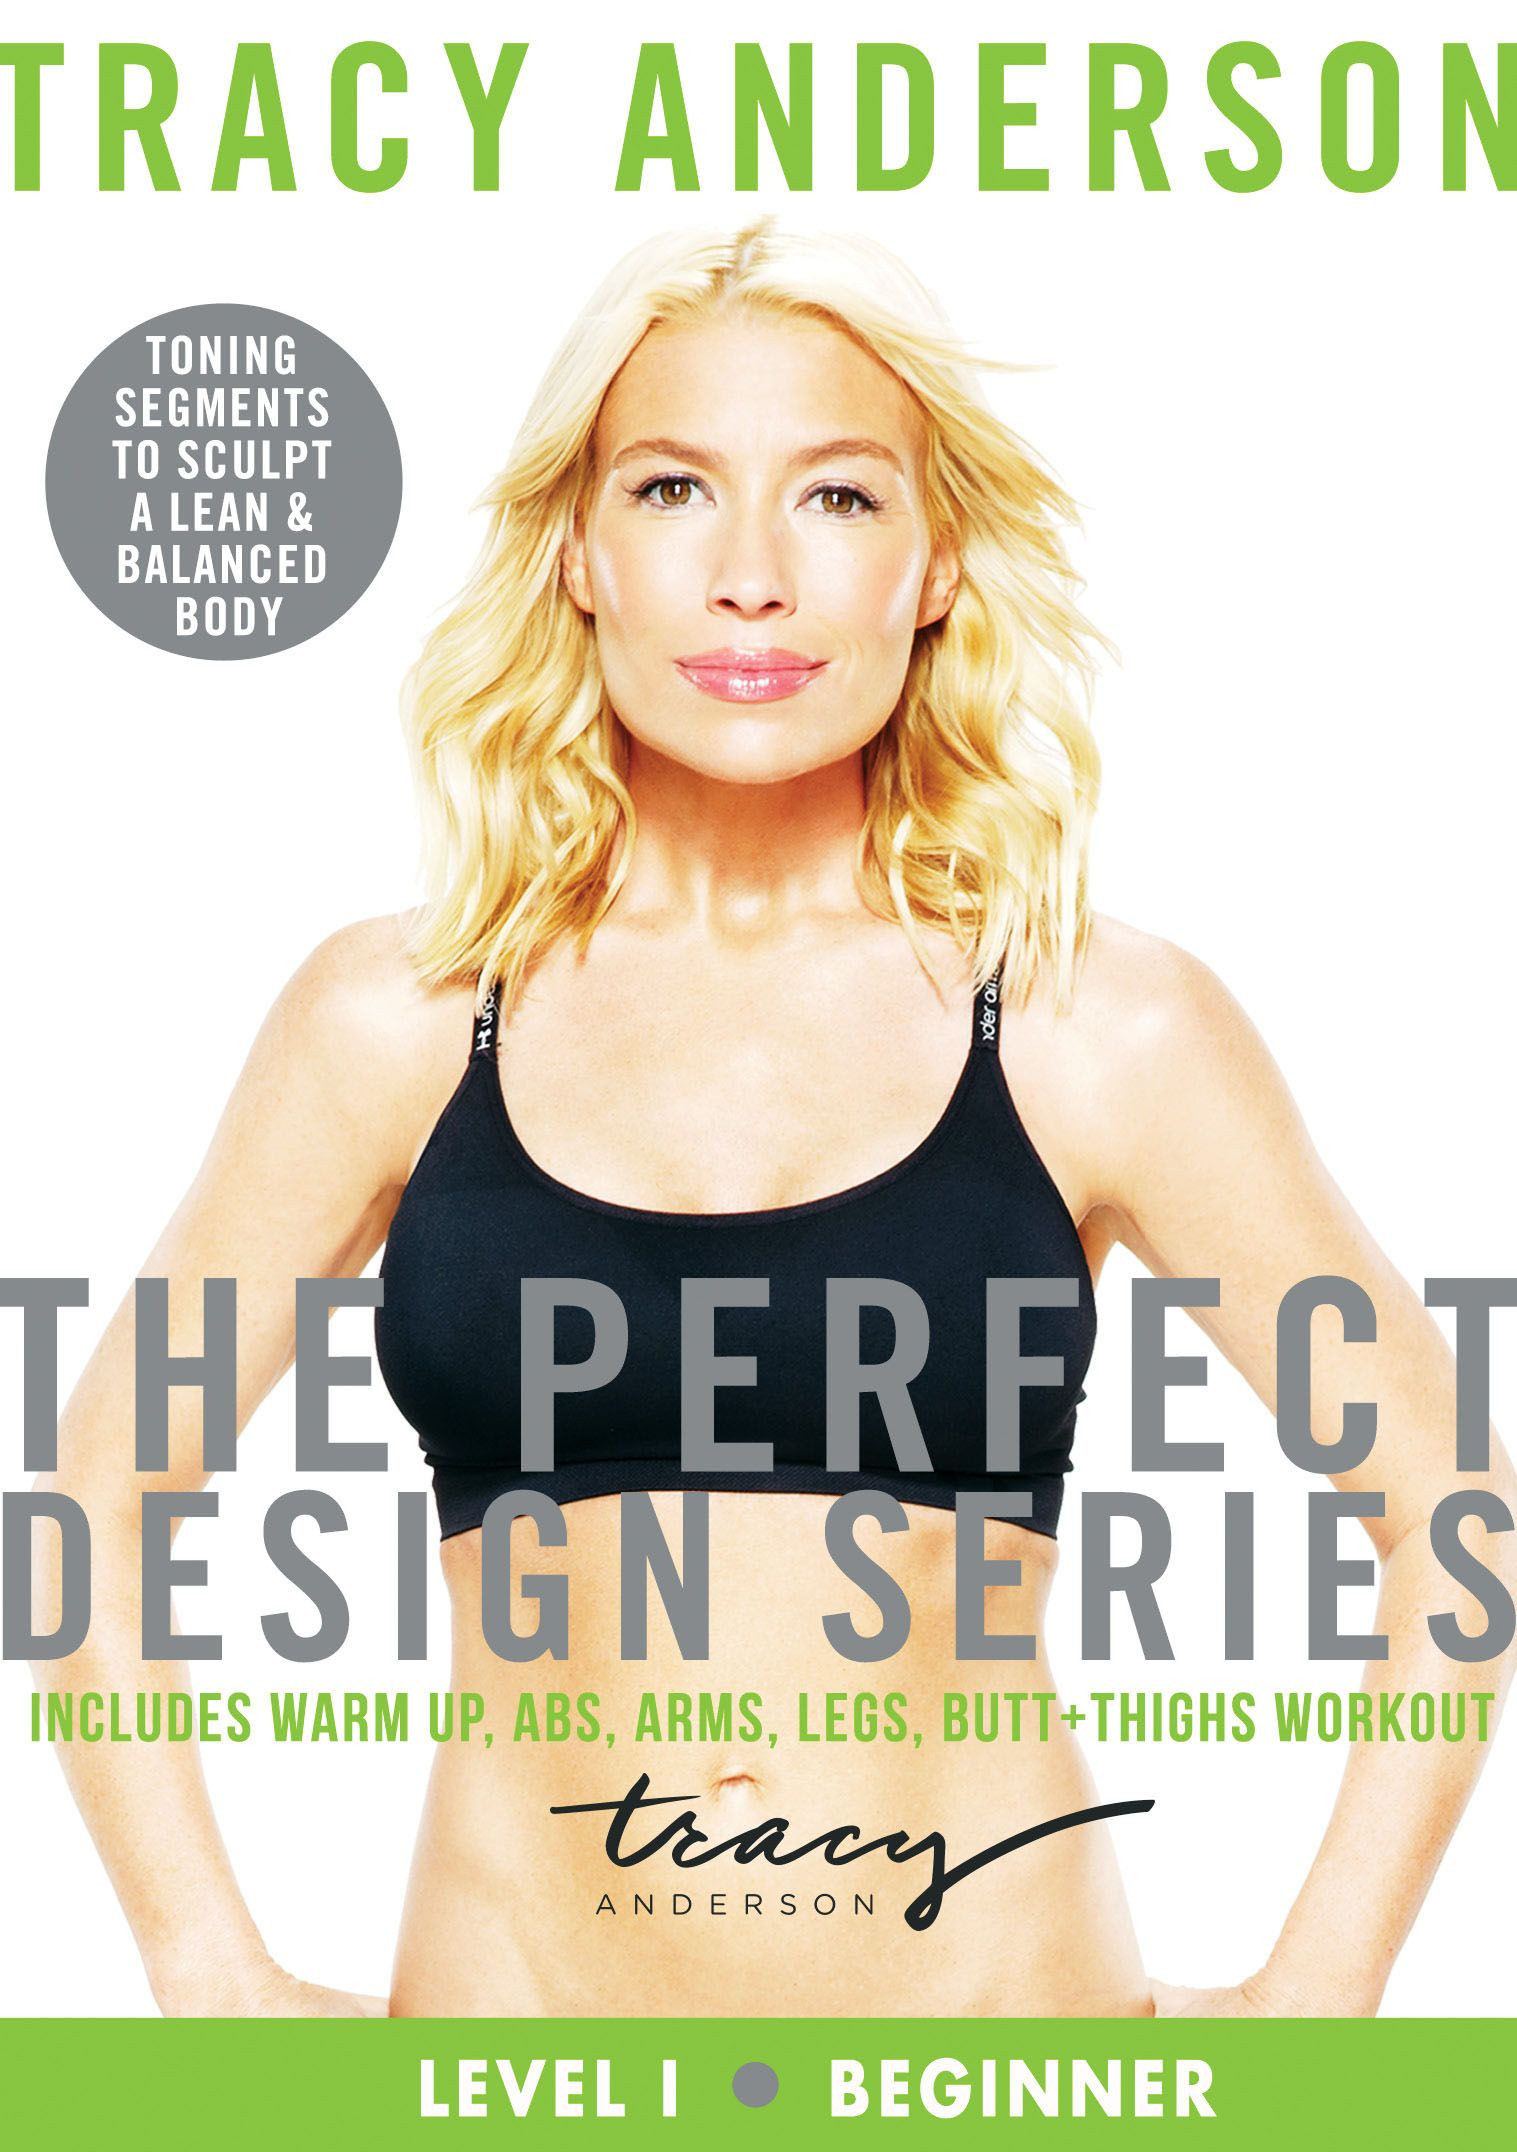 Tracy Anderson: The Perfect Design Series - Level I Beginner